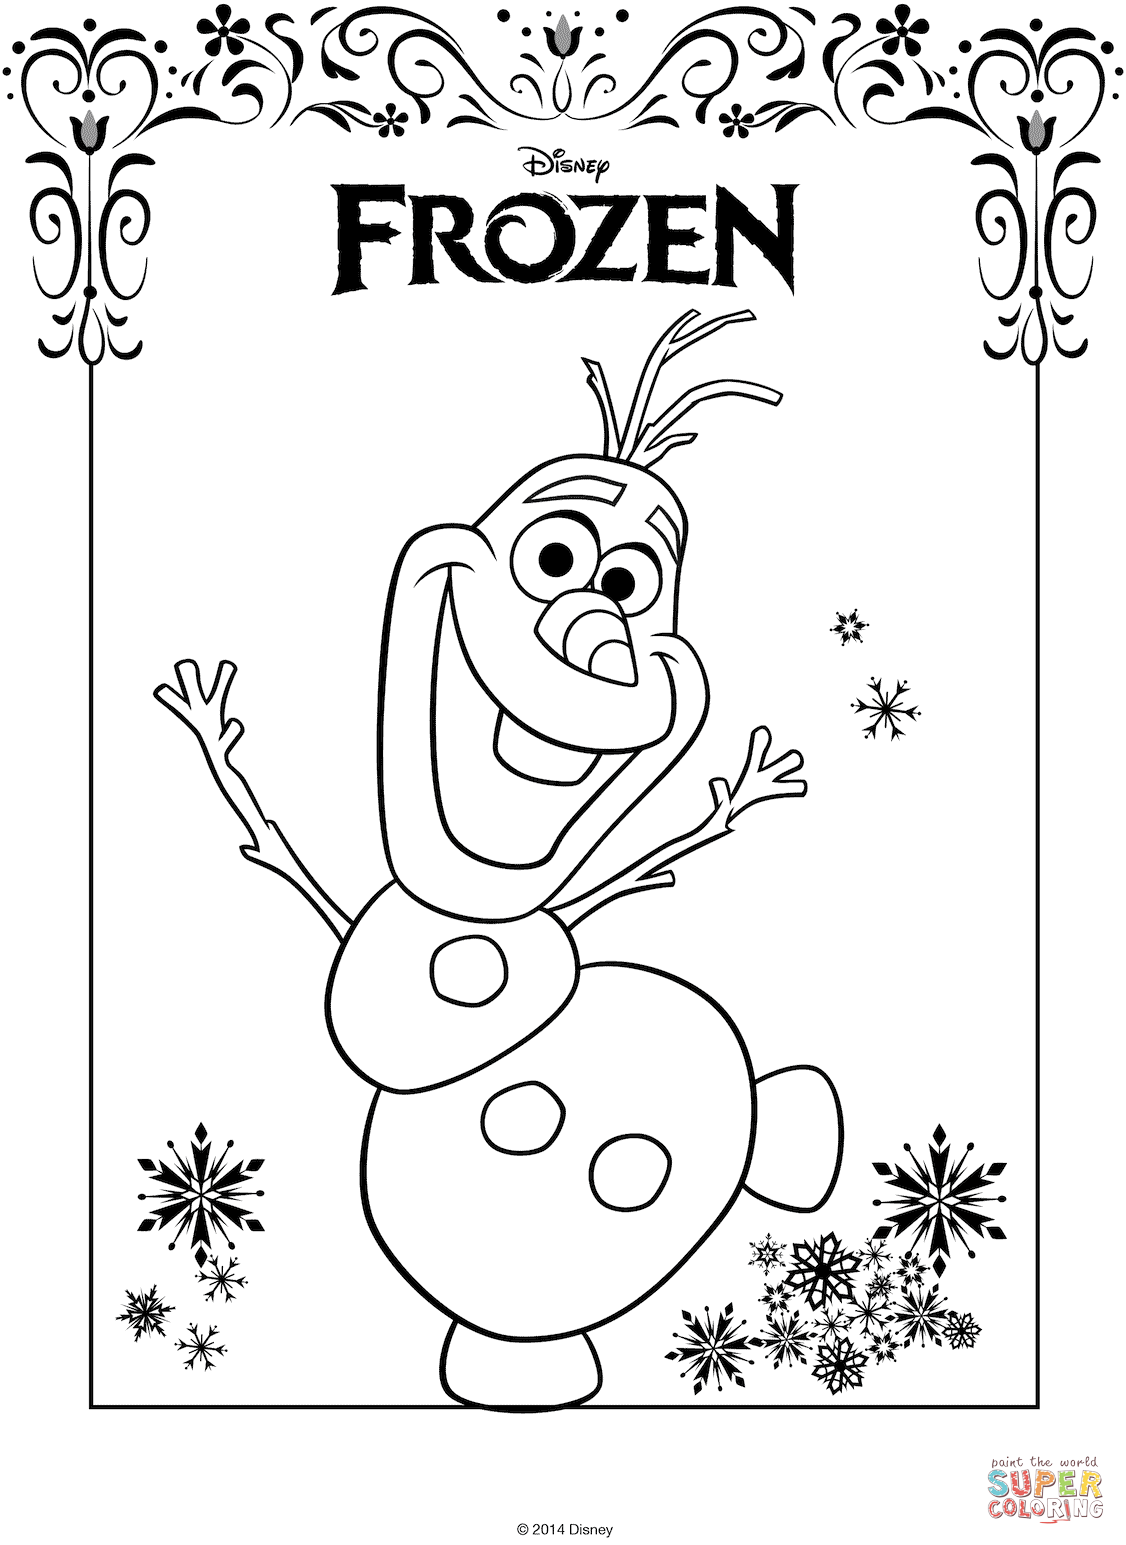 Olaf From Frozen Coloring Page Free Printable Coloring Pages Frozen Coloring Pages Frozen Coloring Snowman Coloring Pages